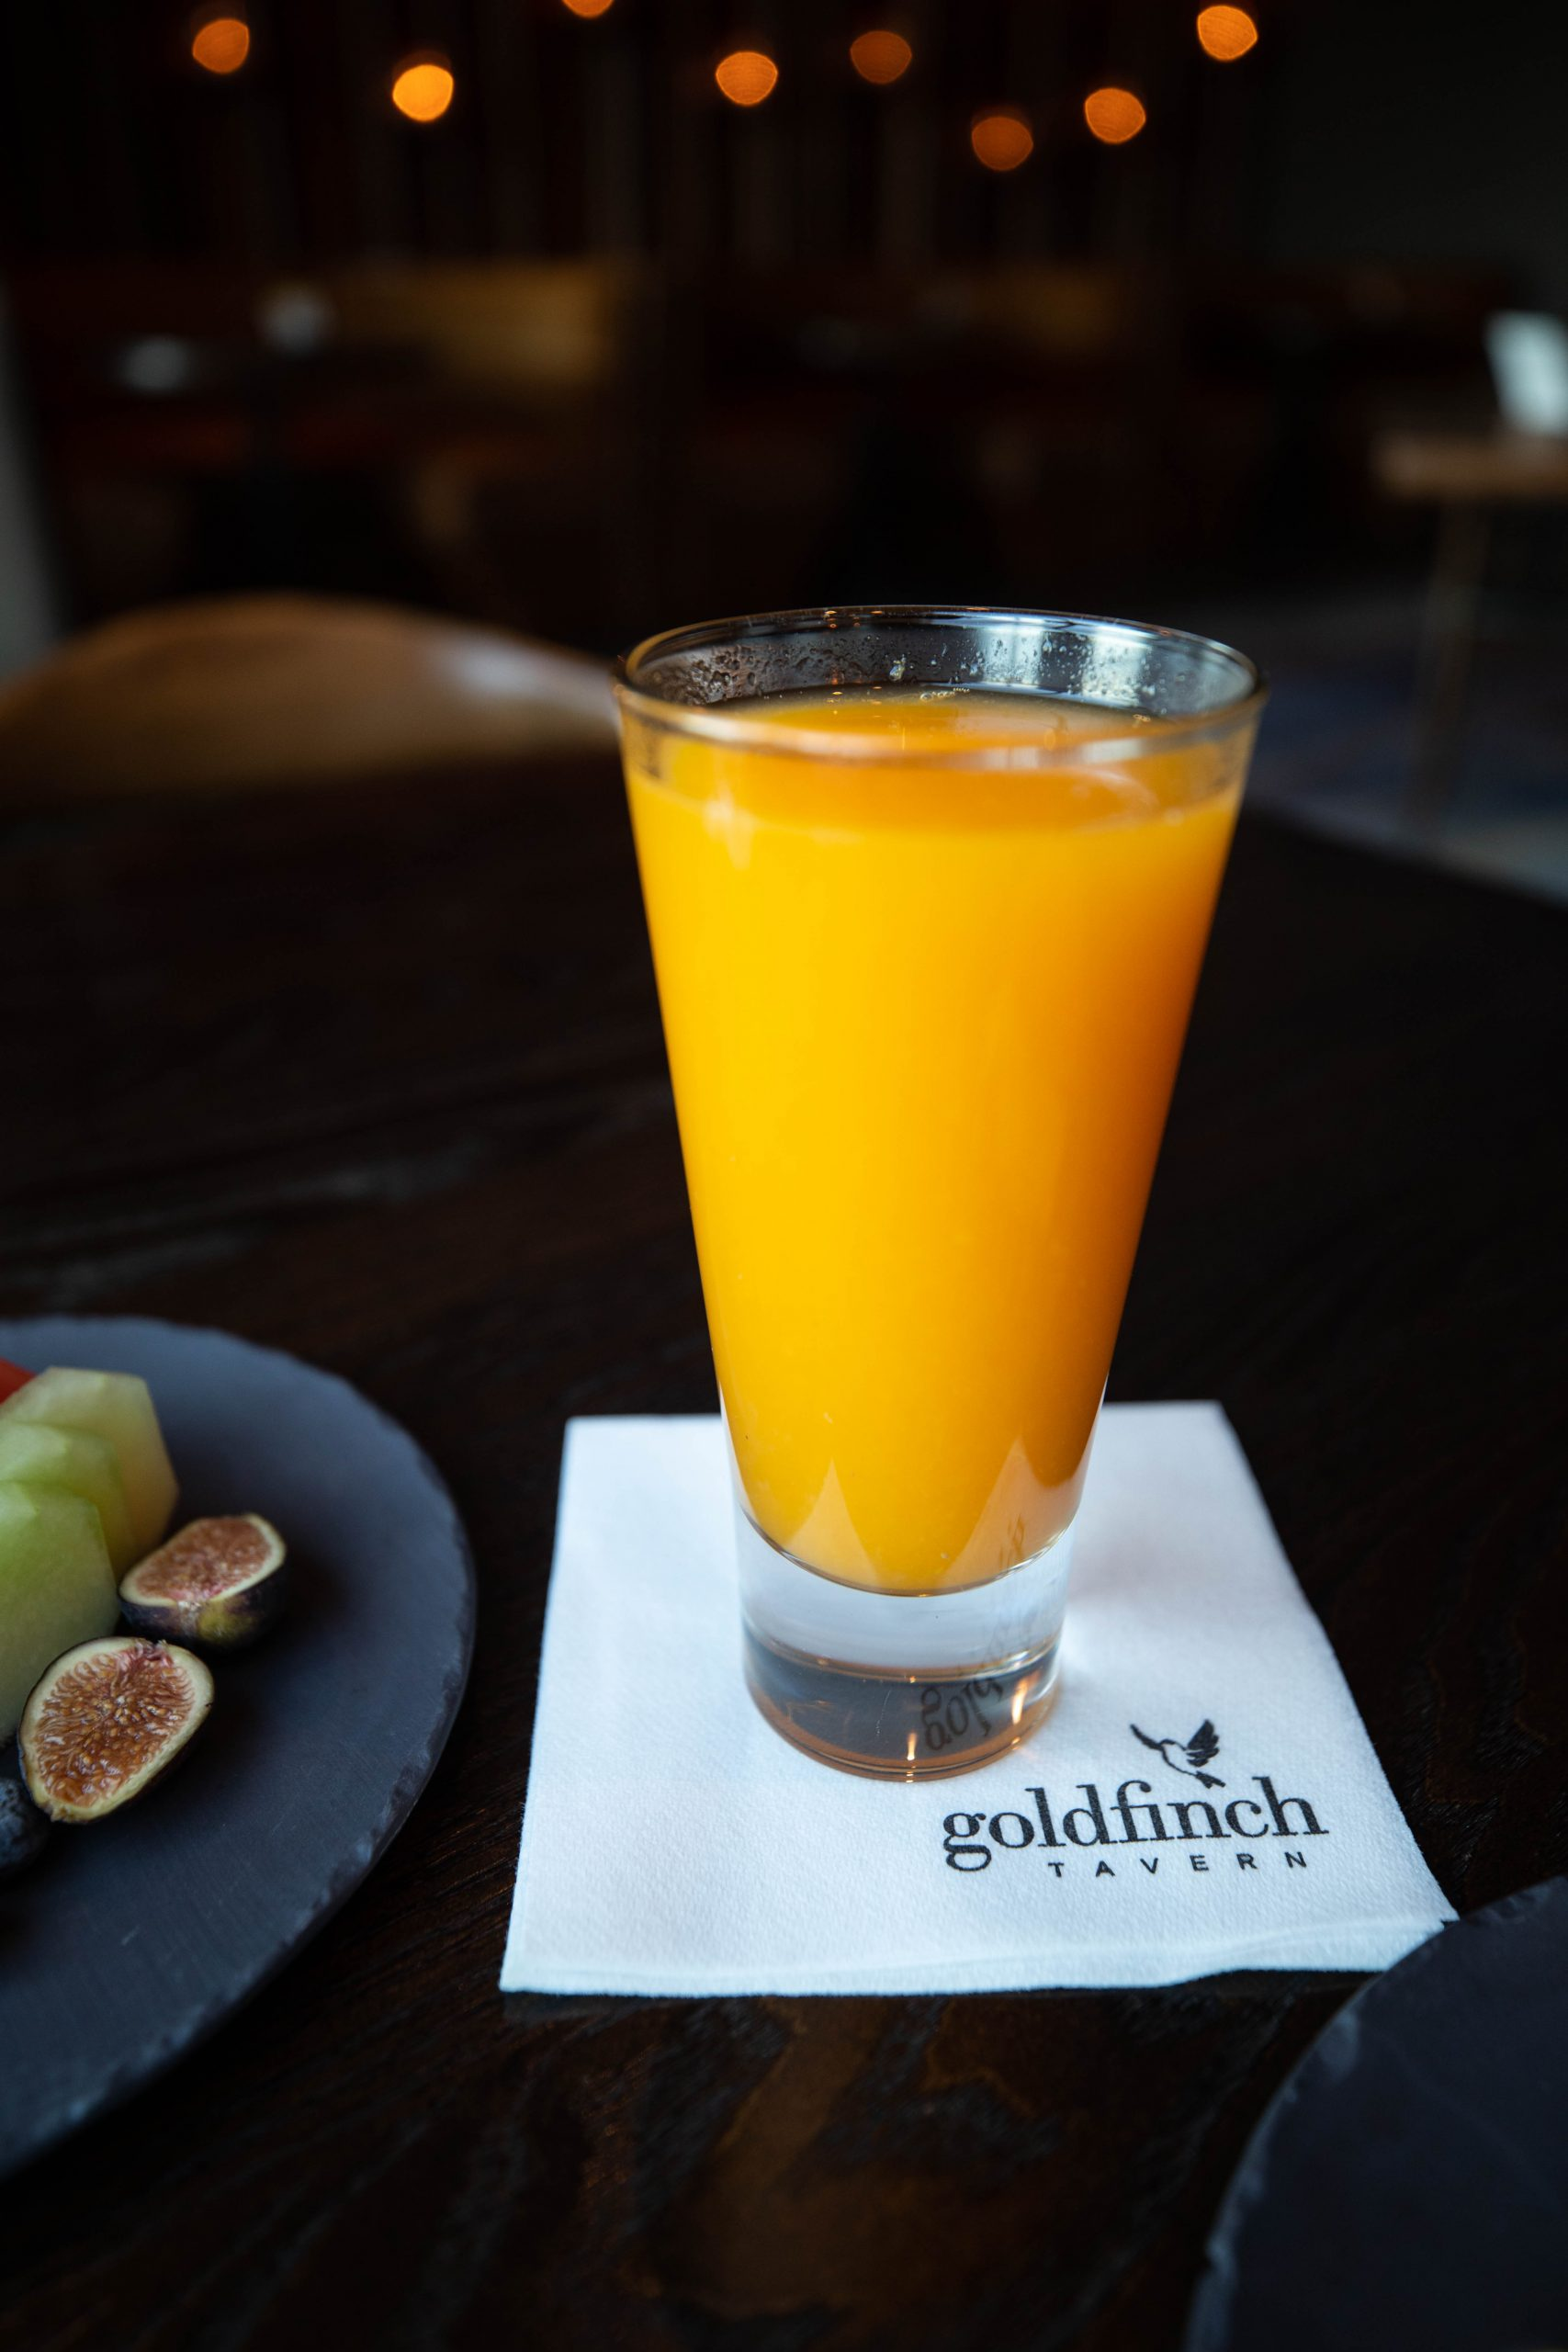 Goldfinch Tavern Freshly Squeezed Orange Juice Four Seasons Hotel Seattle Washington by Annie Fairfax